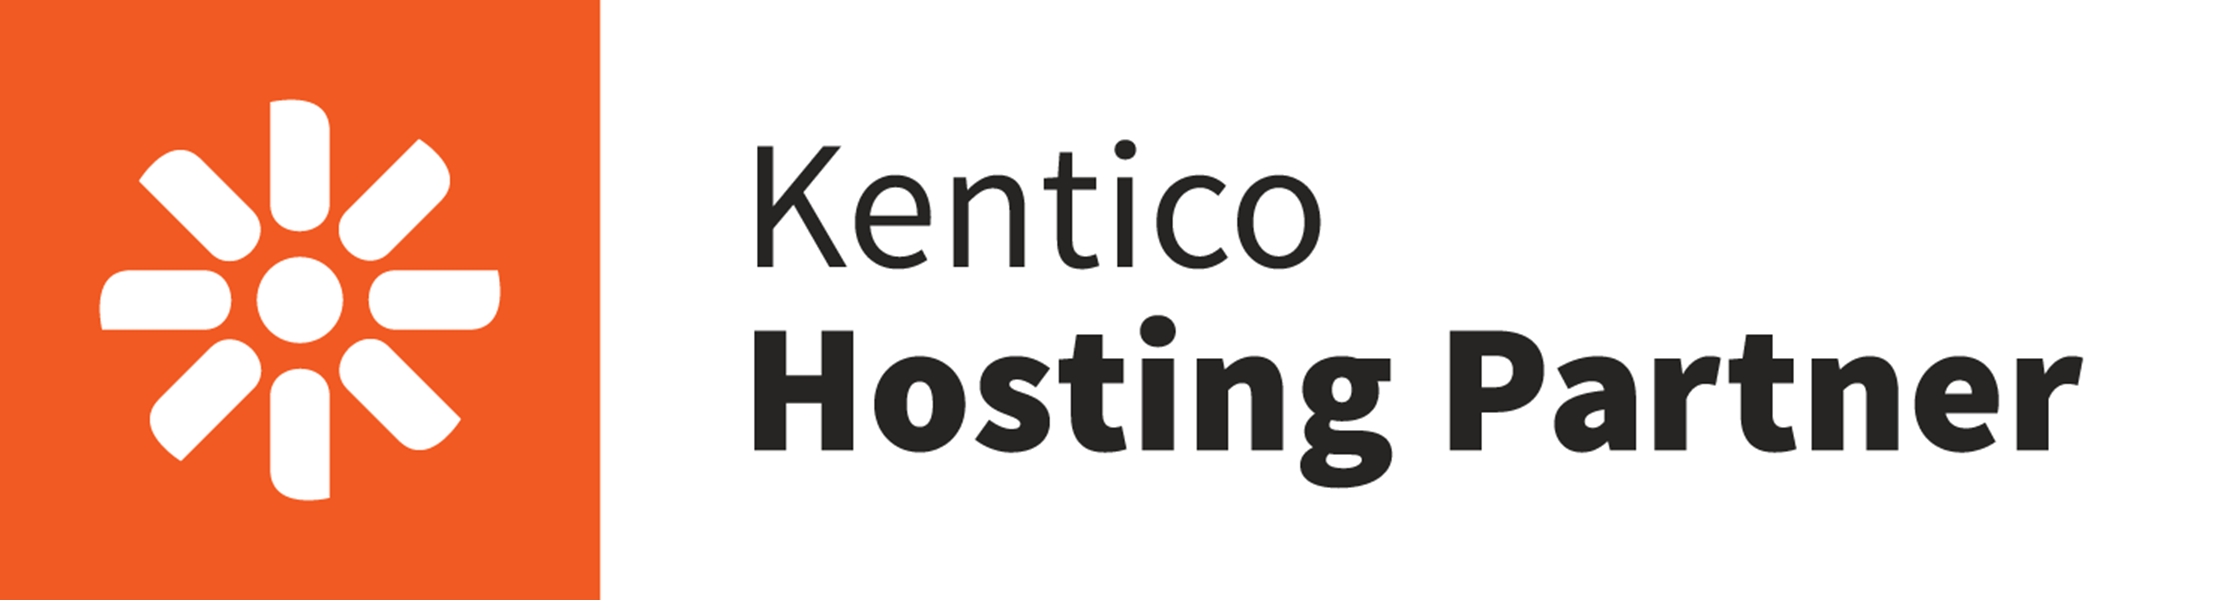 Kentico Hosting Partner